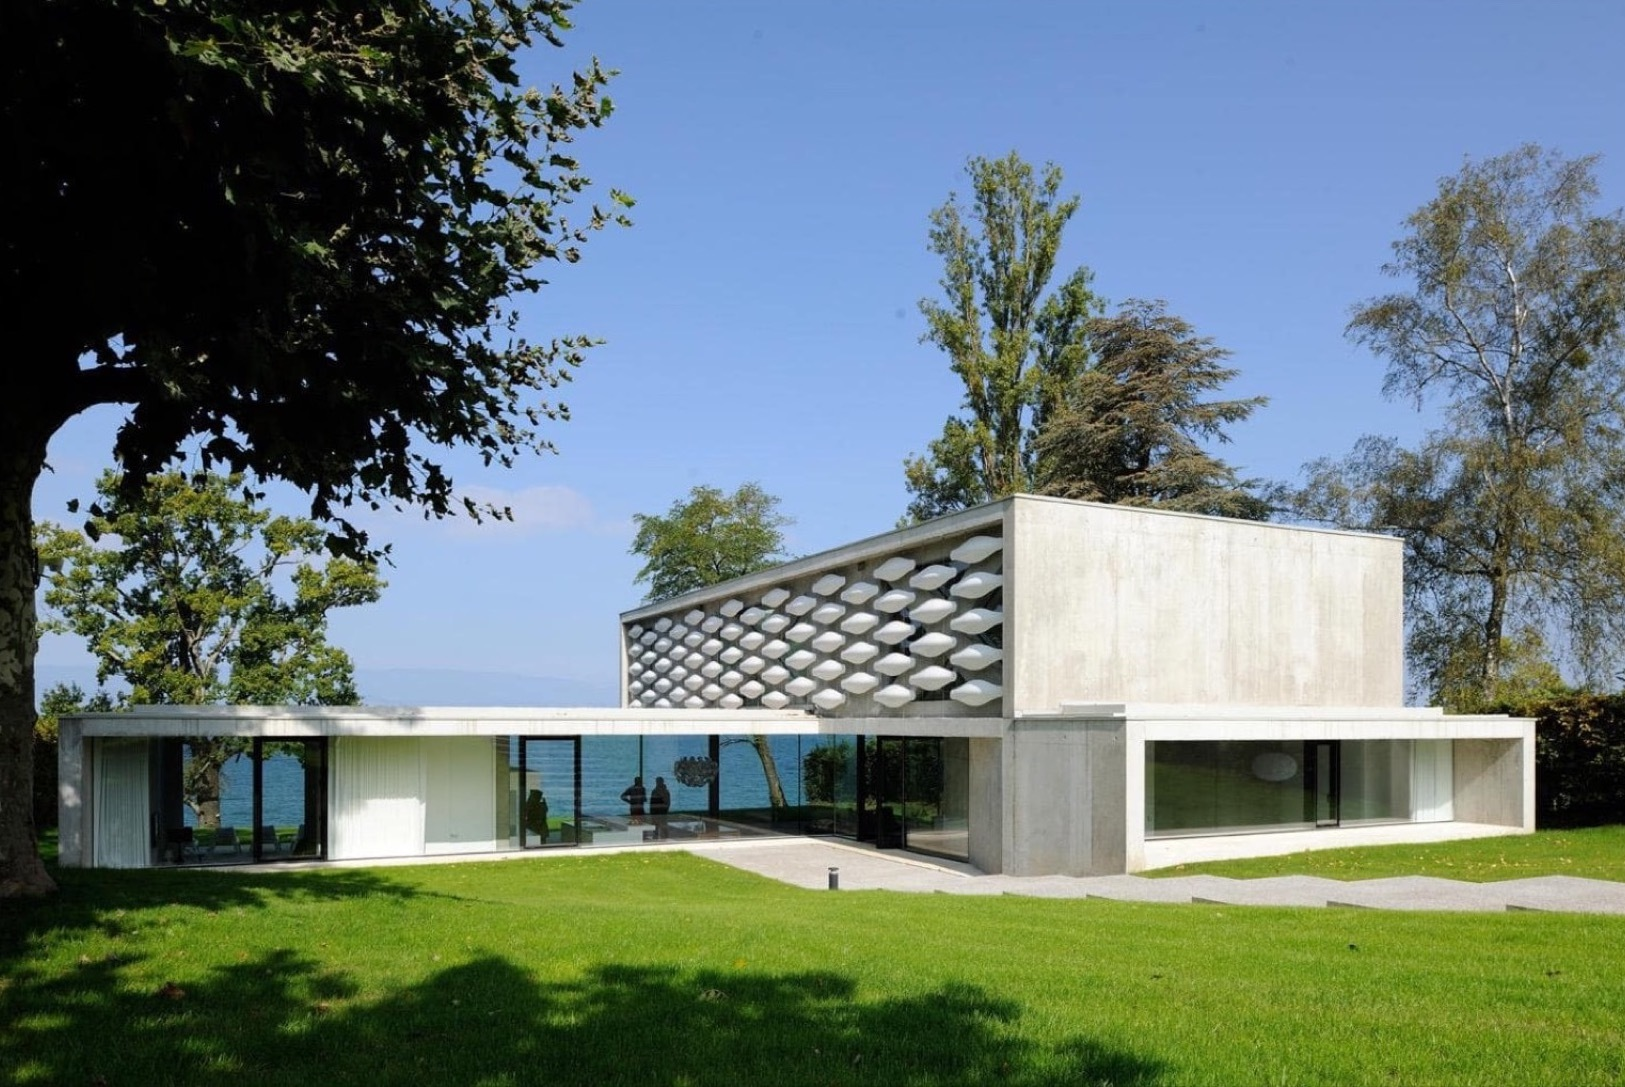 House on the lake pierre minassian architecte archdaily for Maison architecte contemporaine